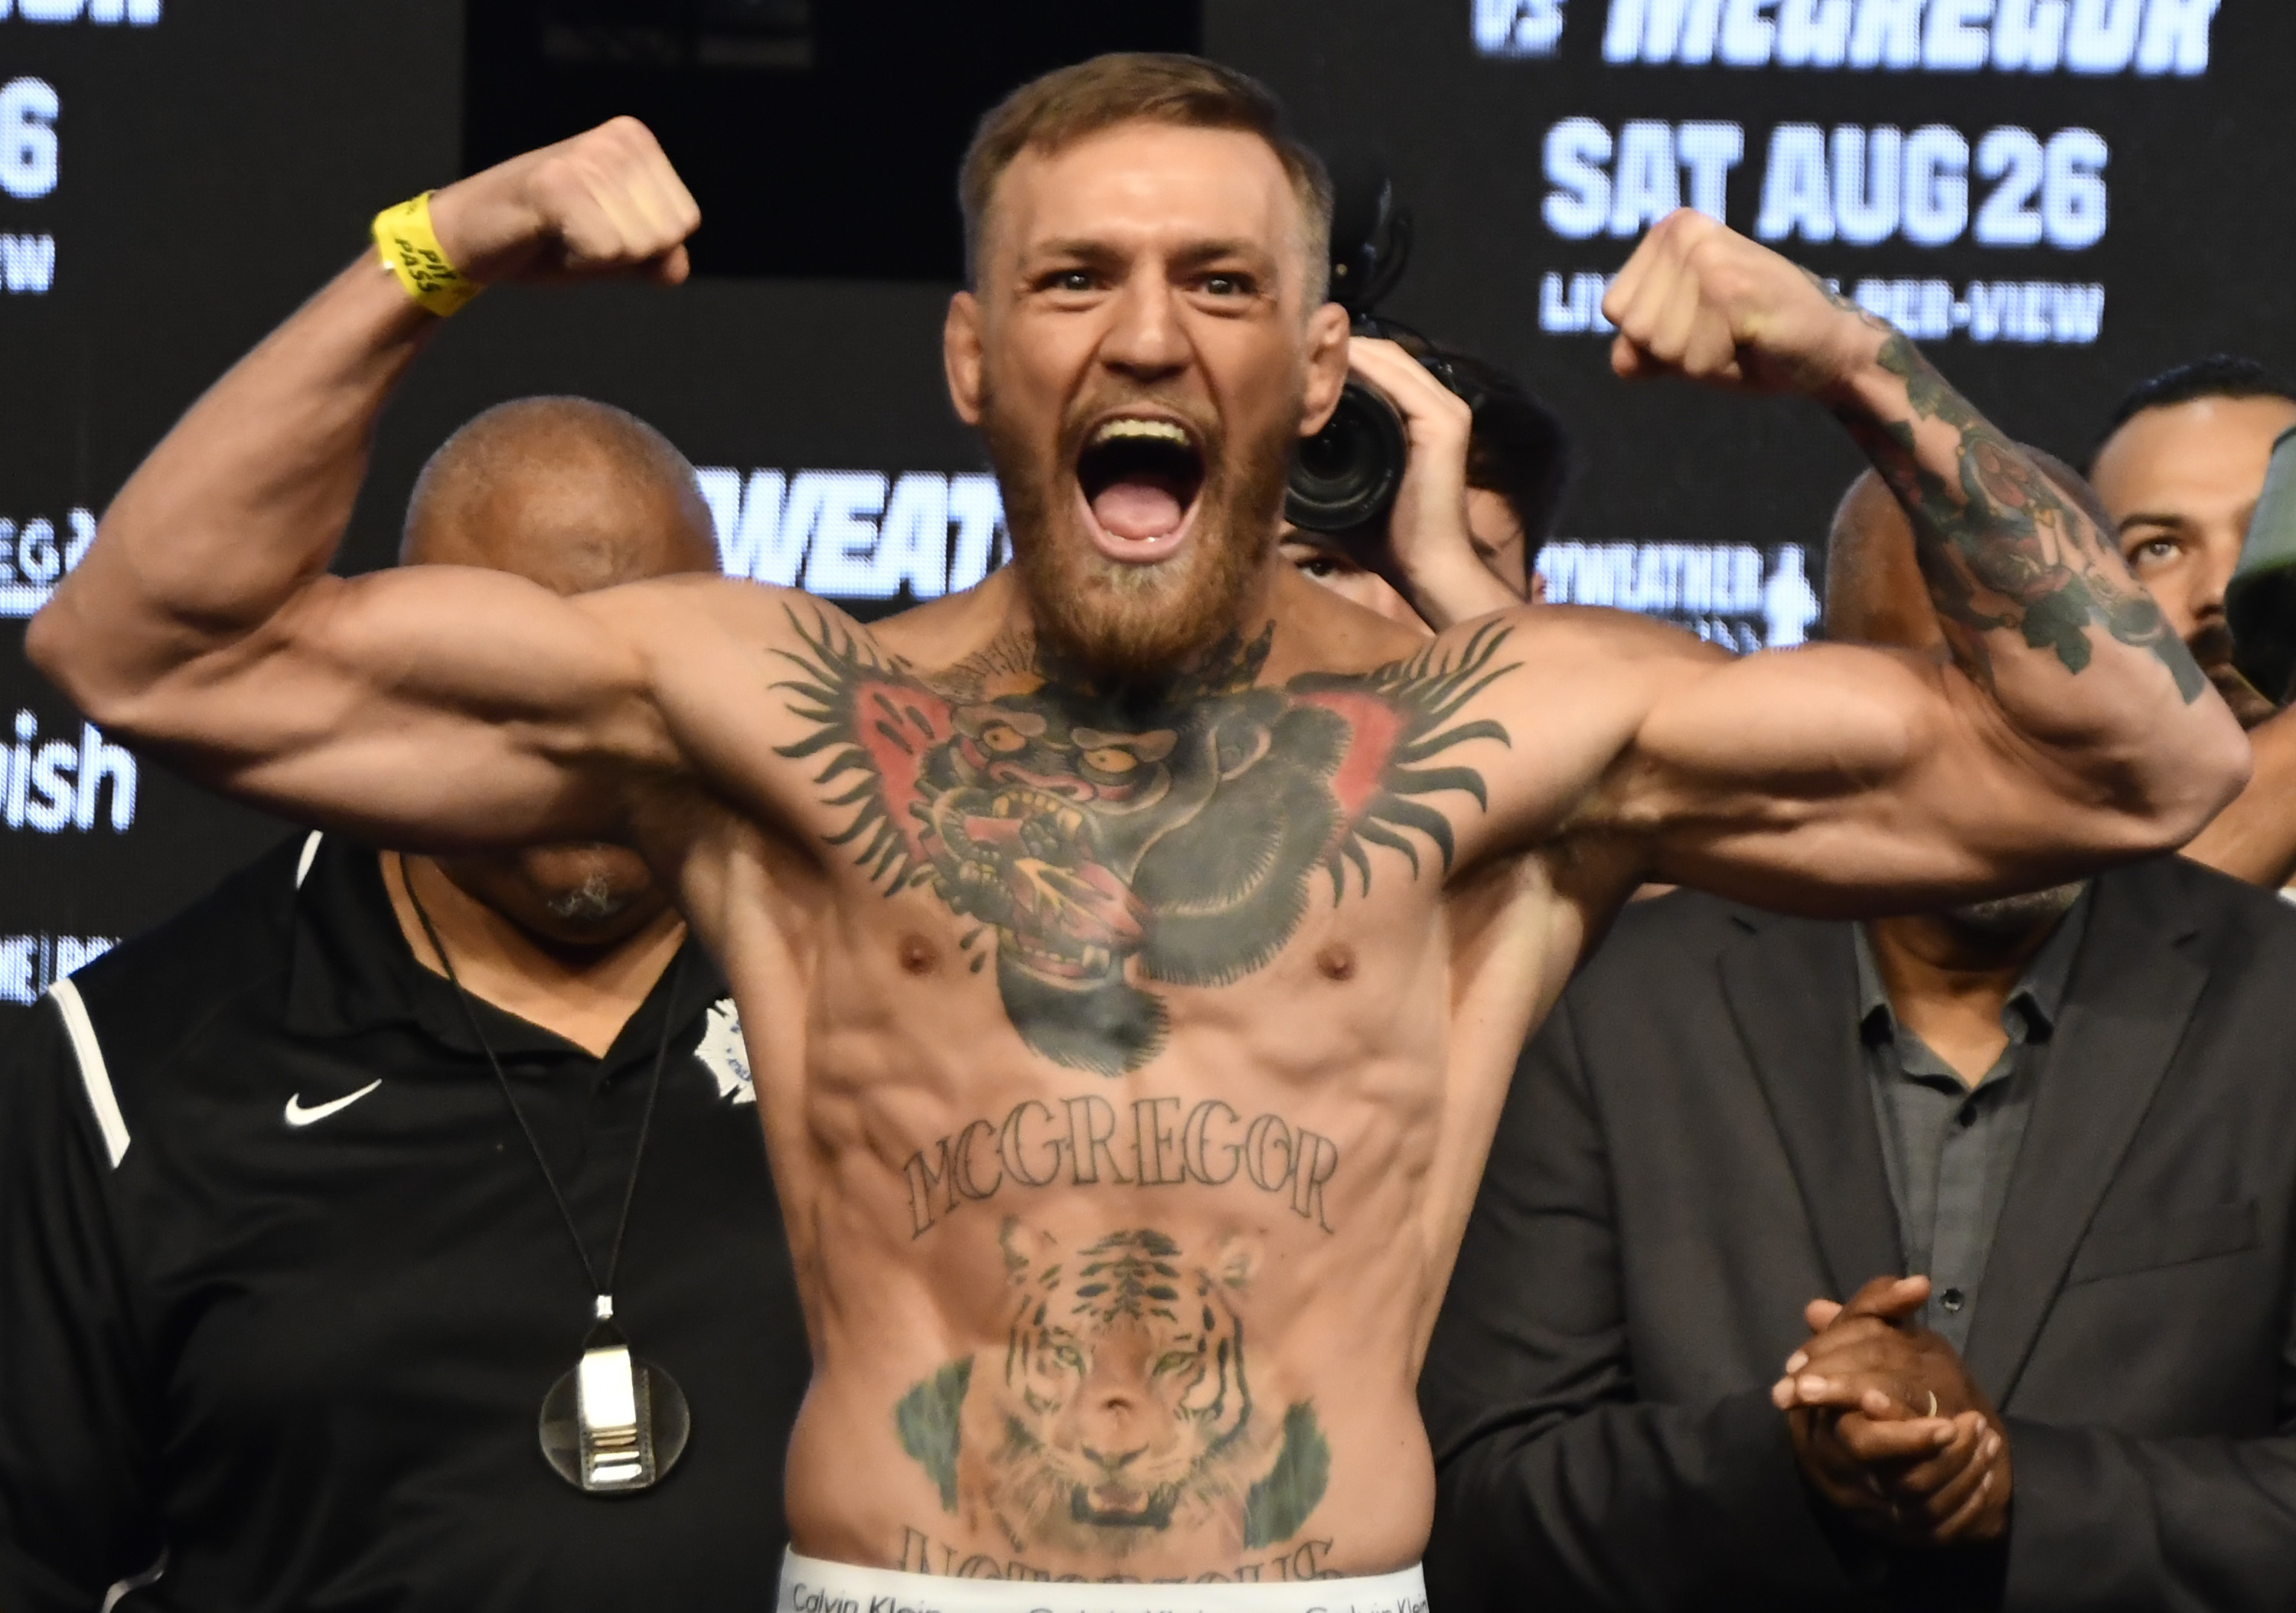 Floyd Mayweather vs. Conor McGregor sold 4.3 million PPV's in North America